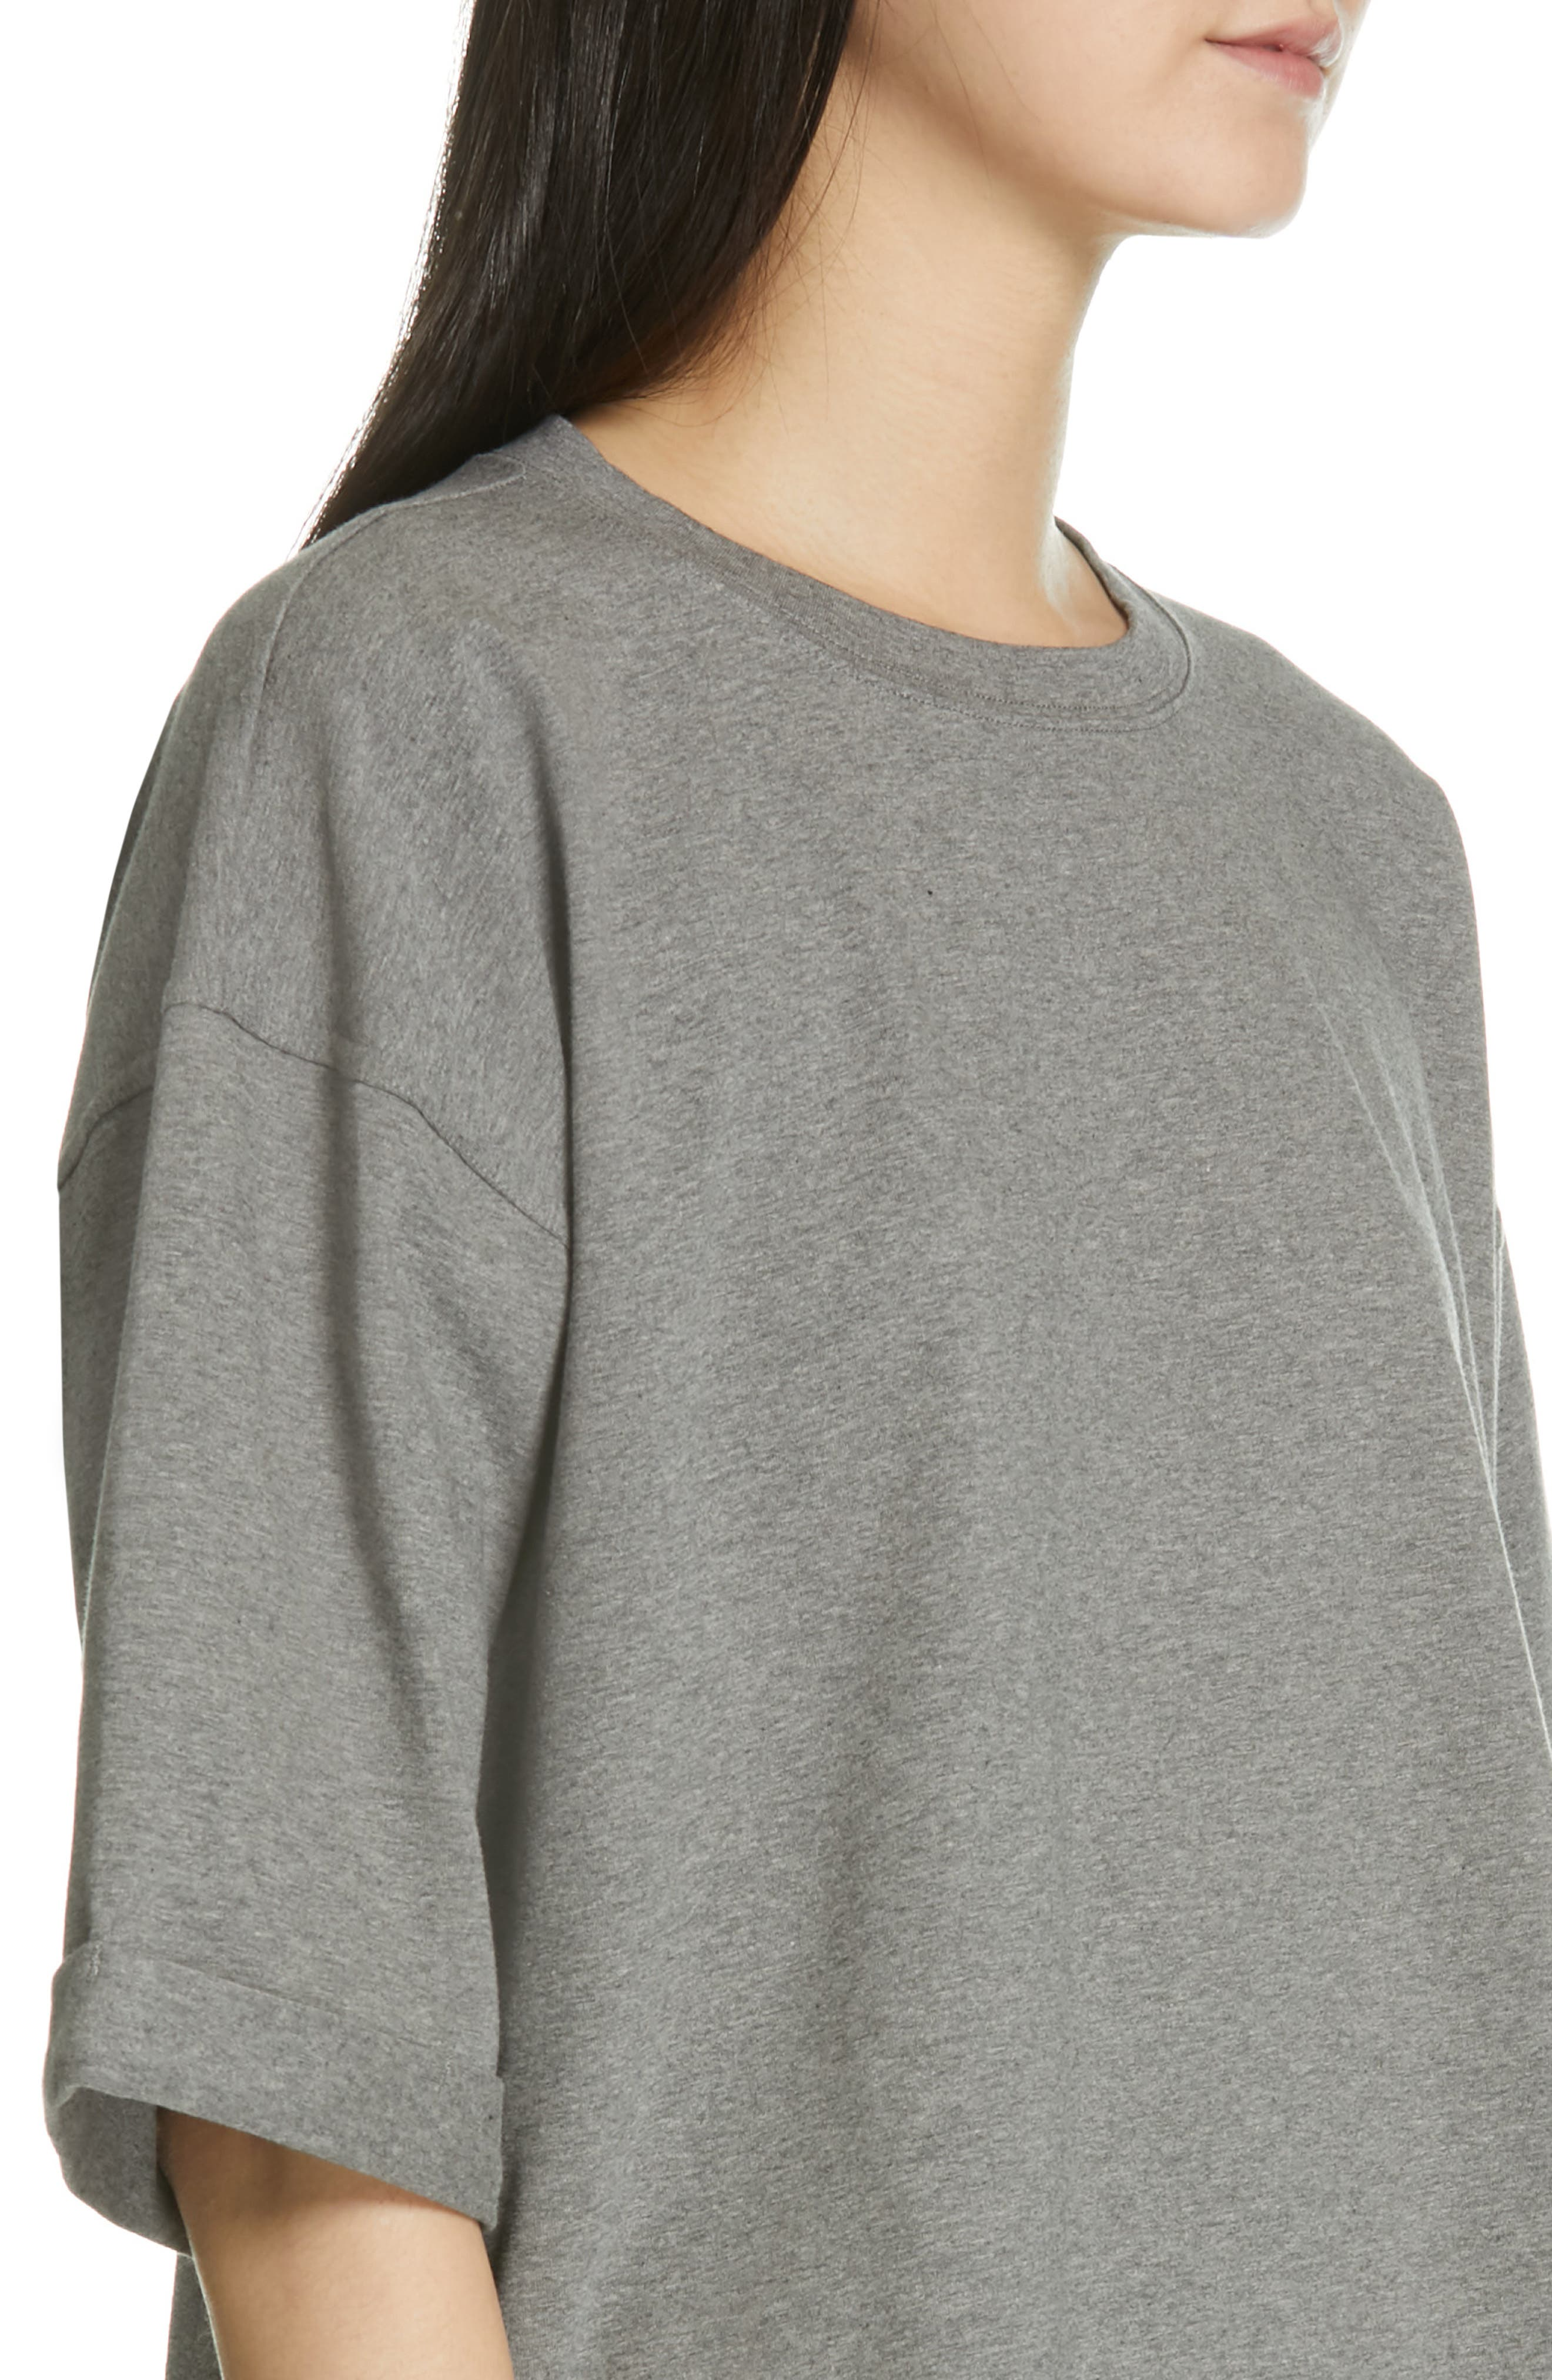 EILEEN FISHER, Stretch Organic Cotton Top, Alternate thumbnail 4, color, MOON